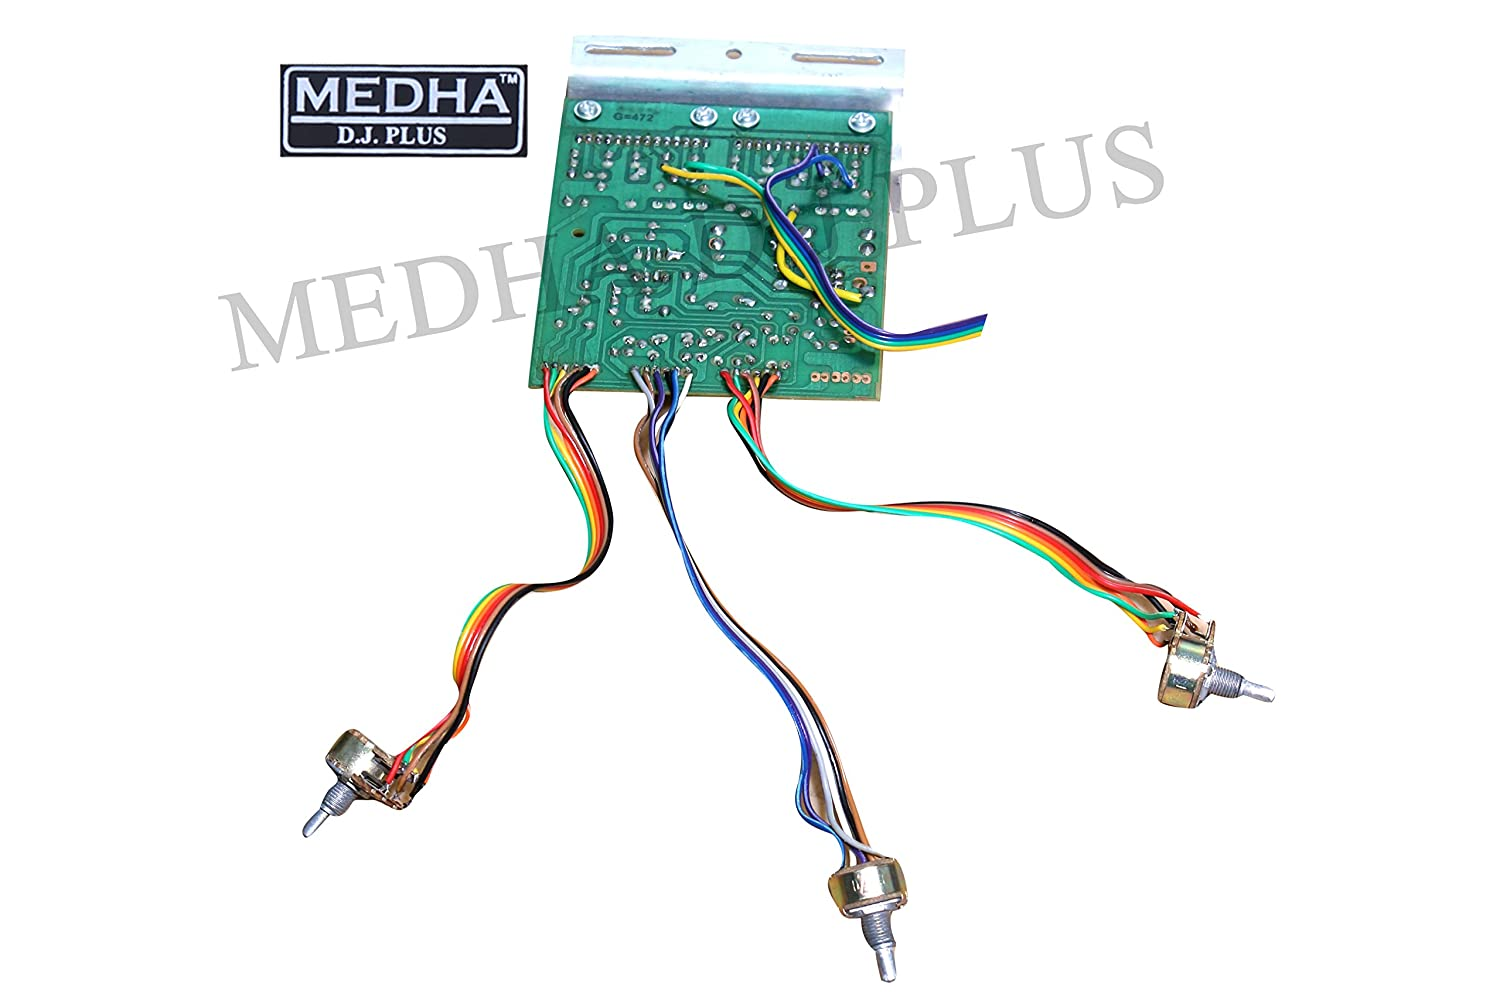 Medha Dj Plus Stereo Audio Amplifier Circuit Kit 100 W Board Bass Free Project Diagram Passive Treble Control For Balance 4440 Ic Musical Instruments